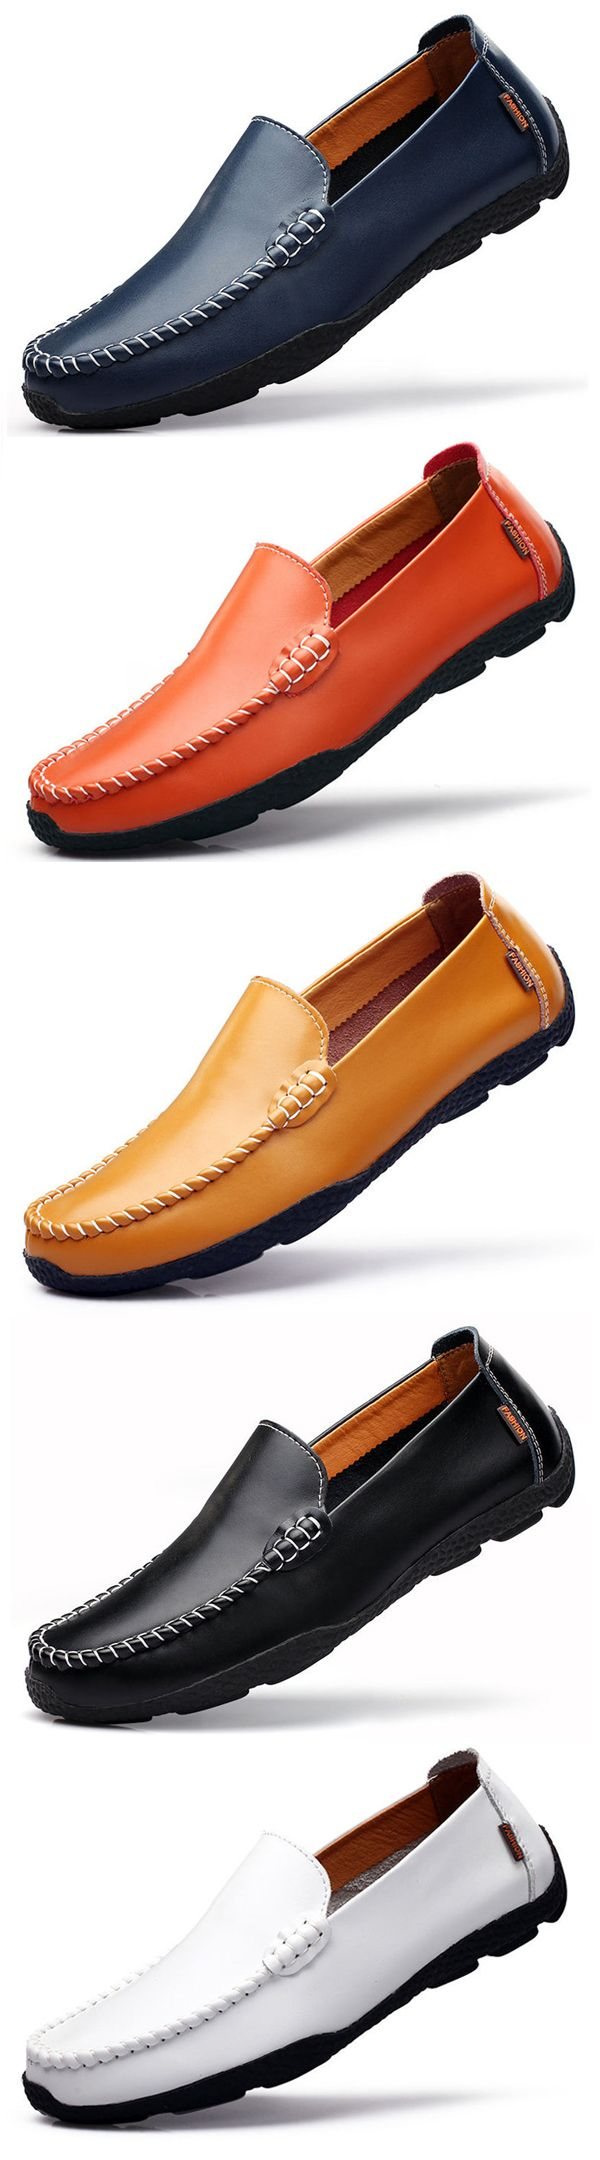 Men Driving Casual Shoes Slip On Loafers Nc Mens Sepatu Pria B2 Pinterest Business And Stuff